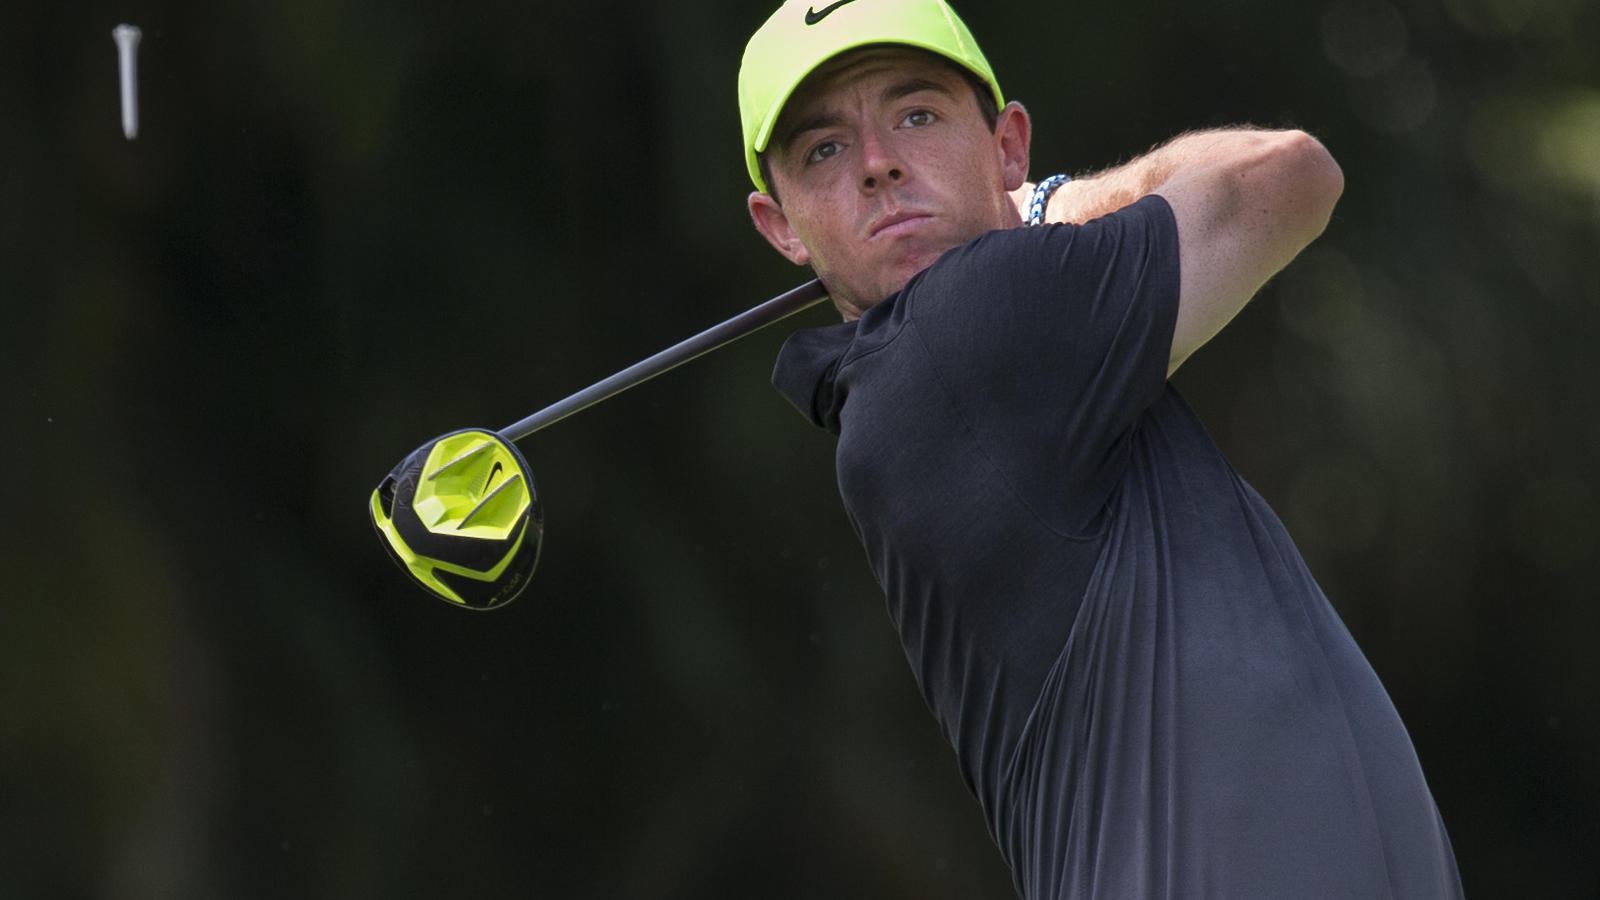 Nike Driver 2014 Rory McIlroy To Debut New Vapor Pro